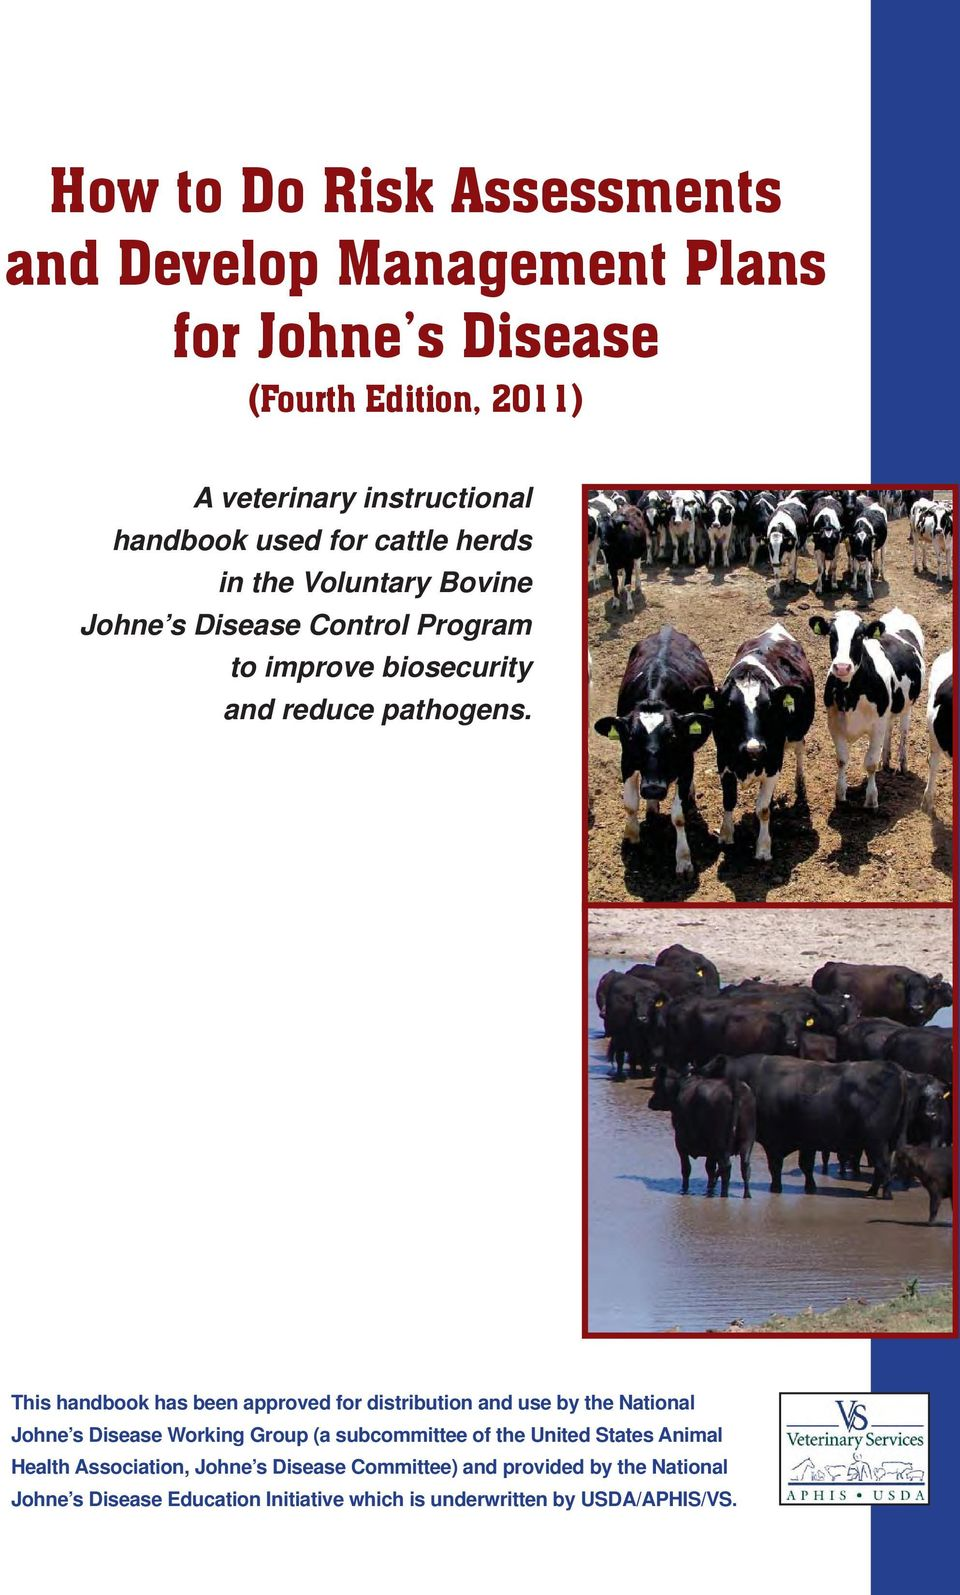 This handbook has been approved for distribution and use by the National Johne s Disease Working Group (a subcommittee of the United States